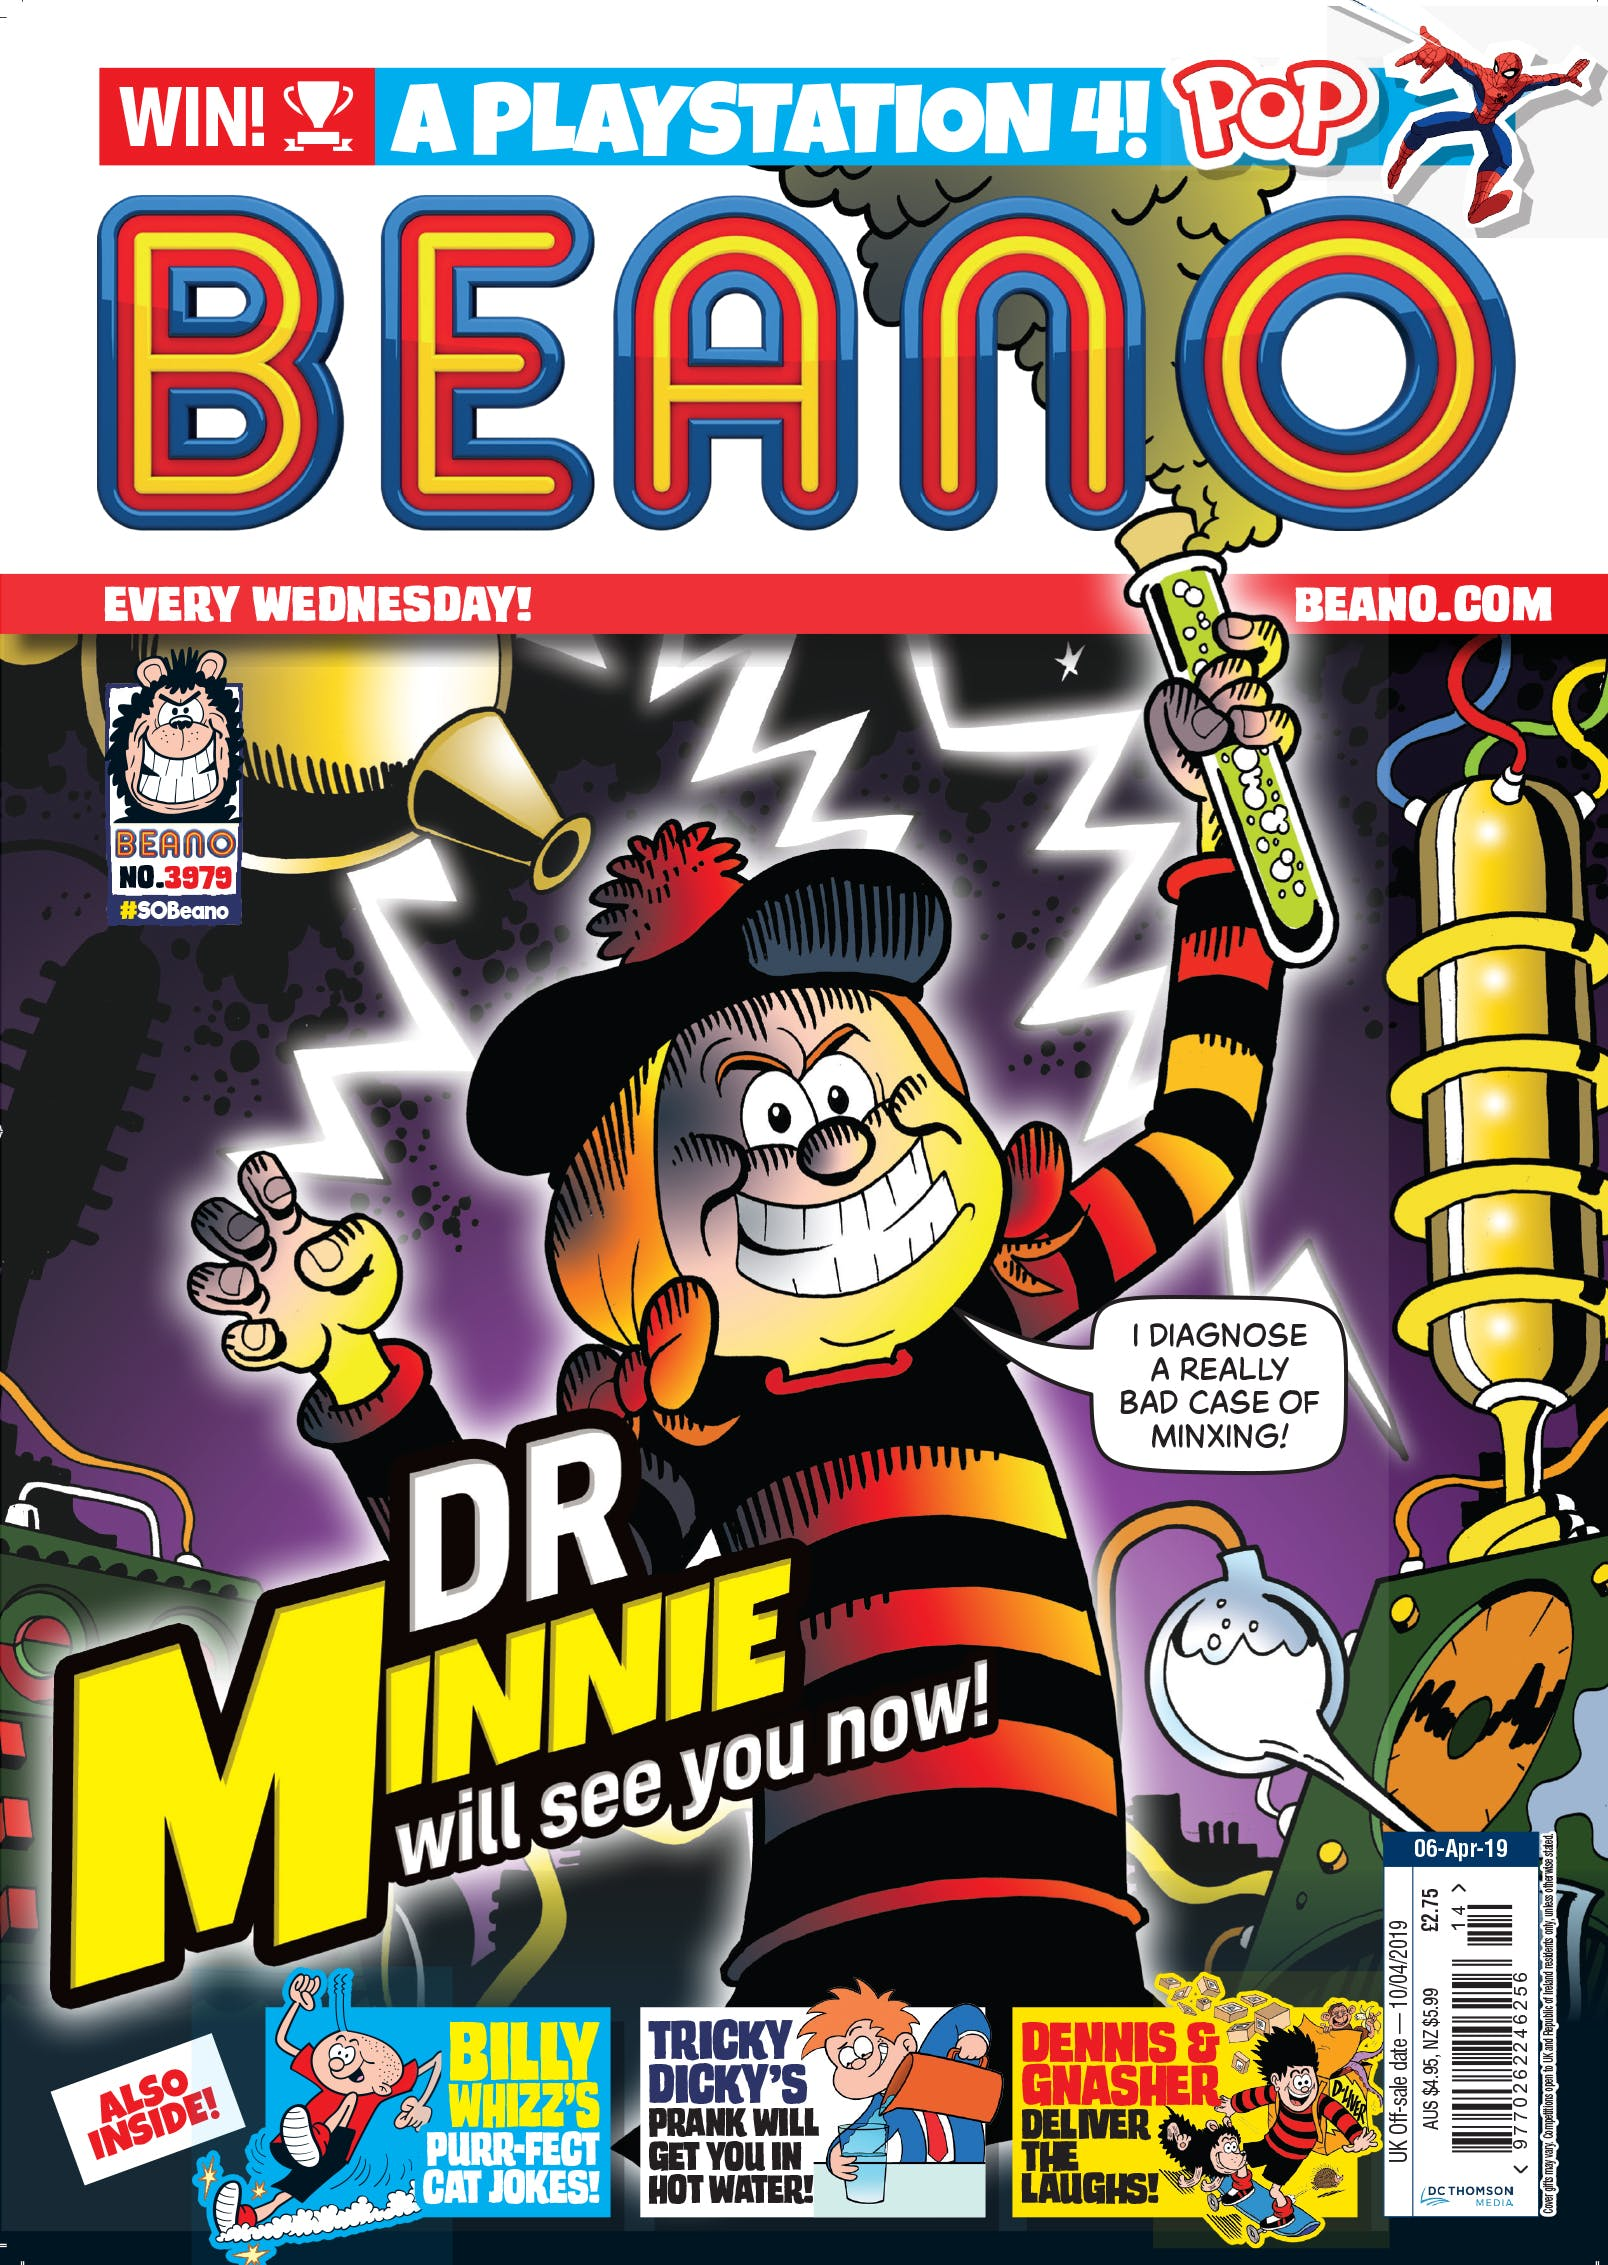 Beano no. 3979. Dr Minnie will see you now!